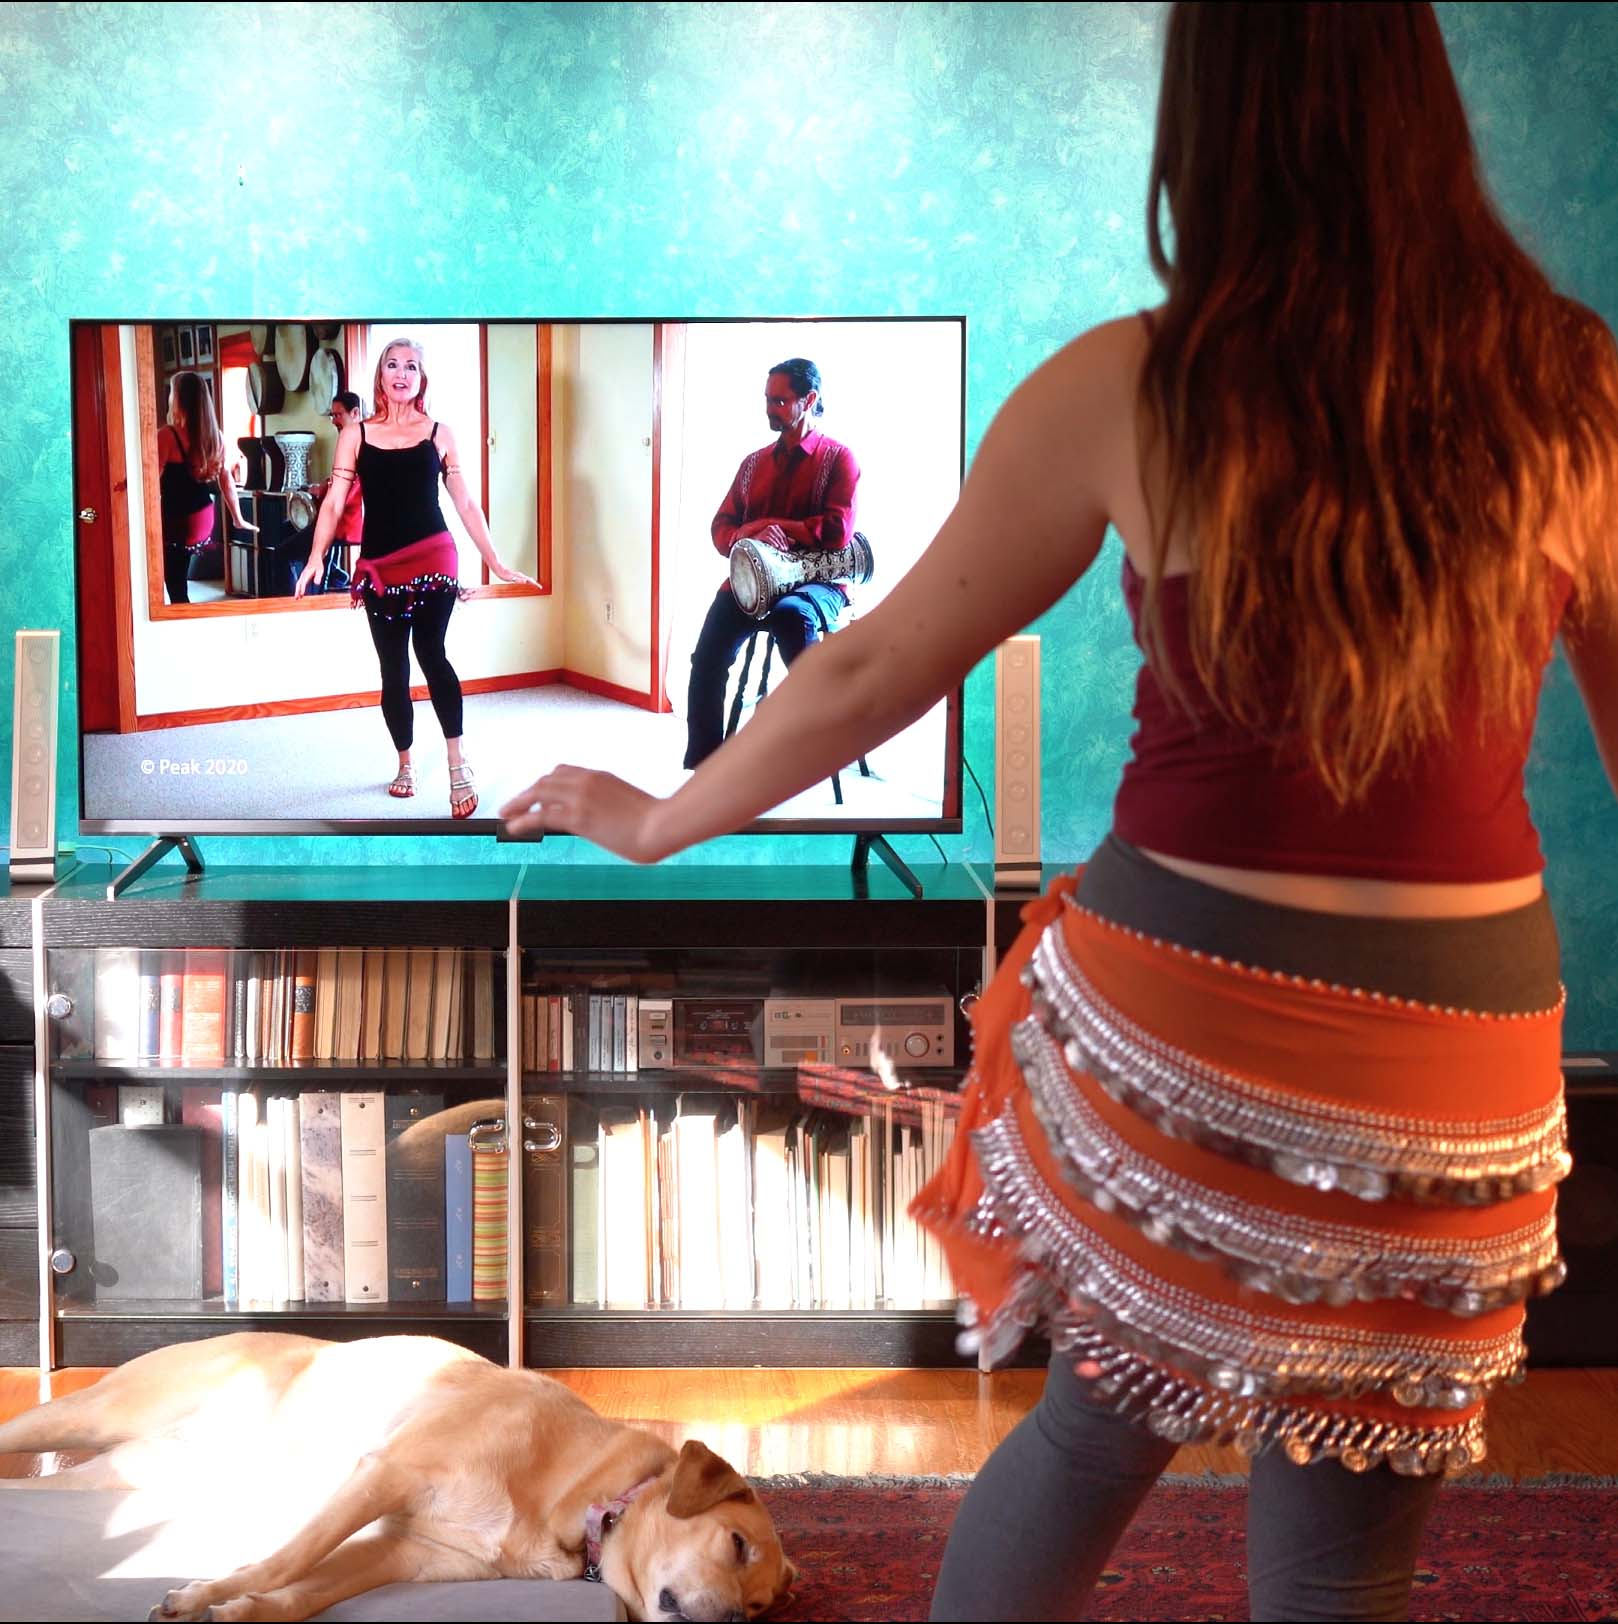 young woman learning belly dance with online class on TV in living room with sleeping dog